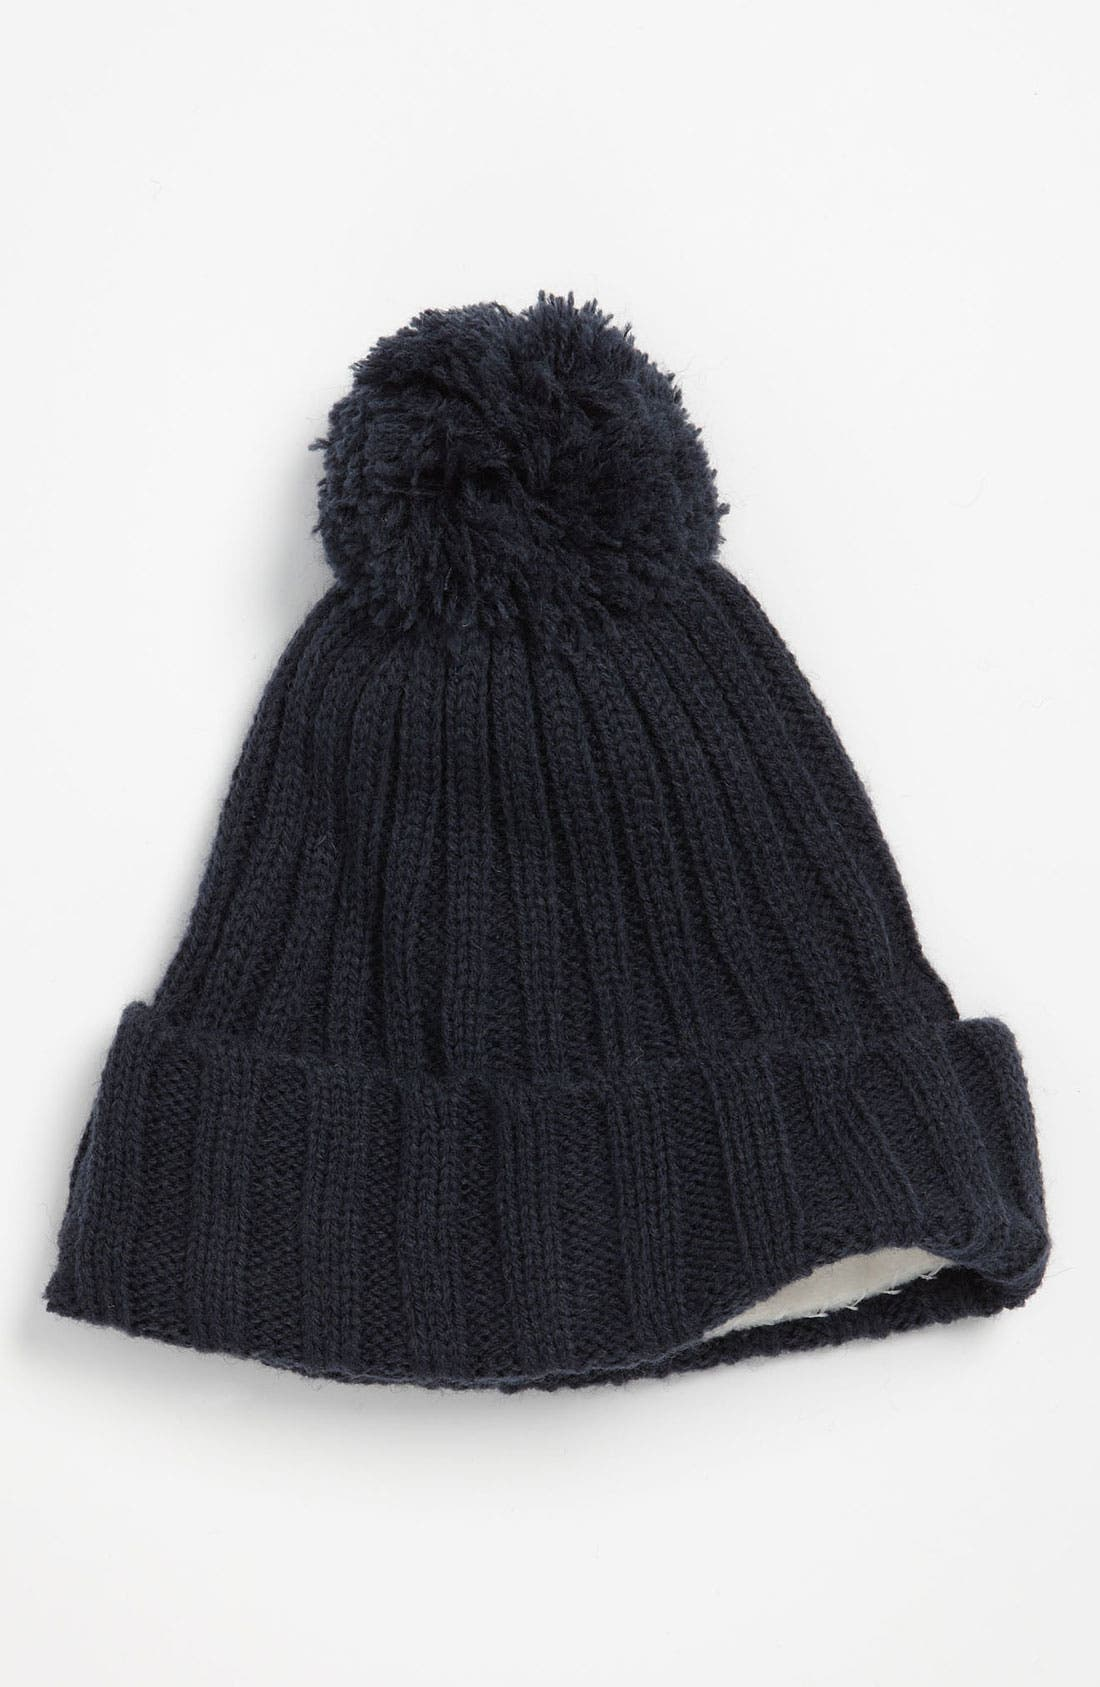 Alternate Image 1 Selected - United Colors of Benetton Kids Lined Hat (Infant)